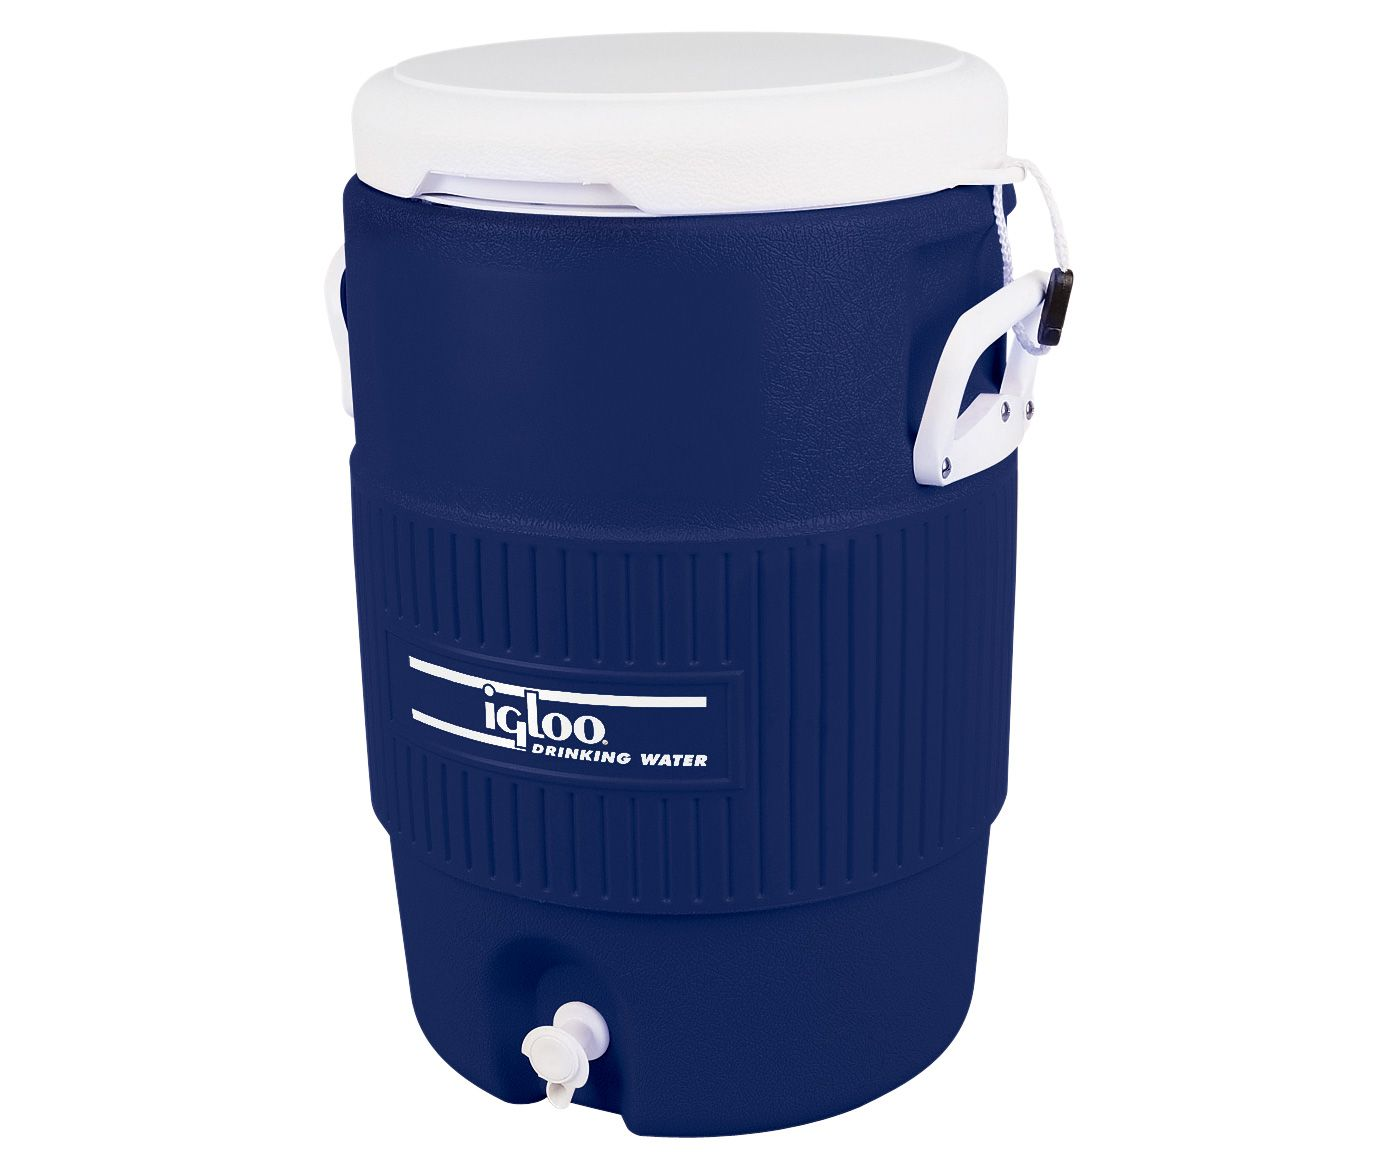 Igloo 5 Gallon Seat Top Cover